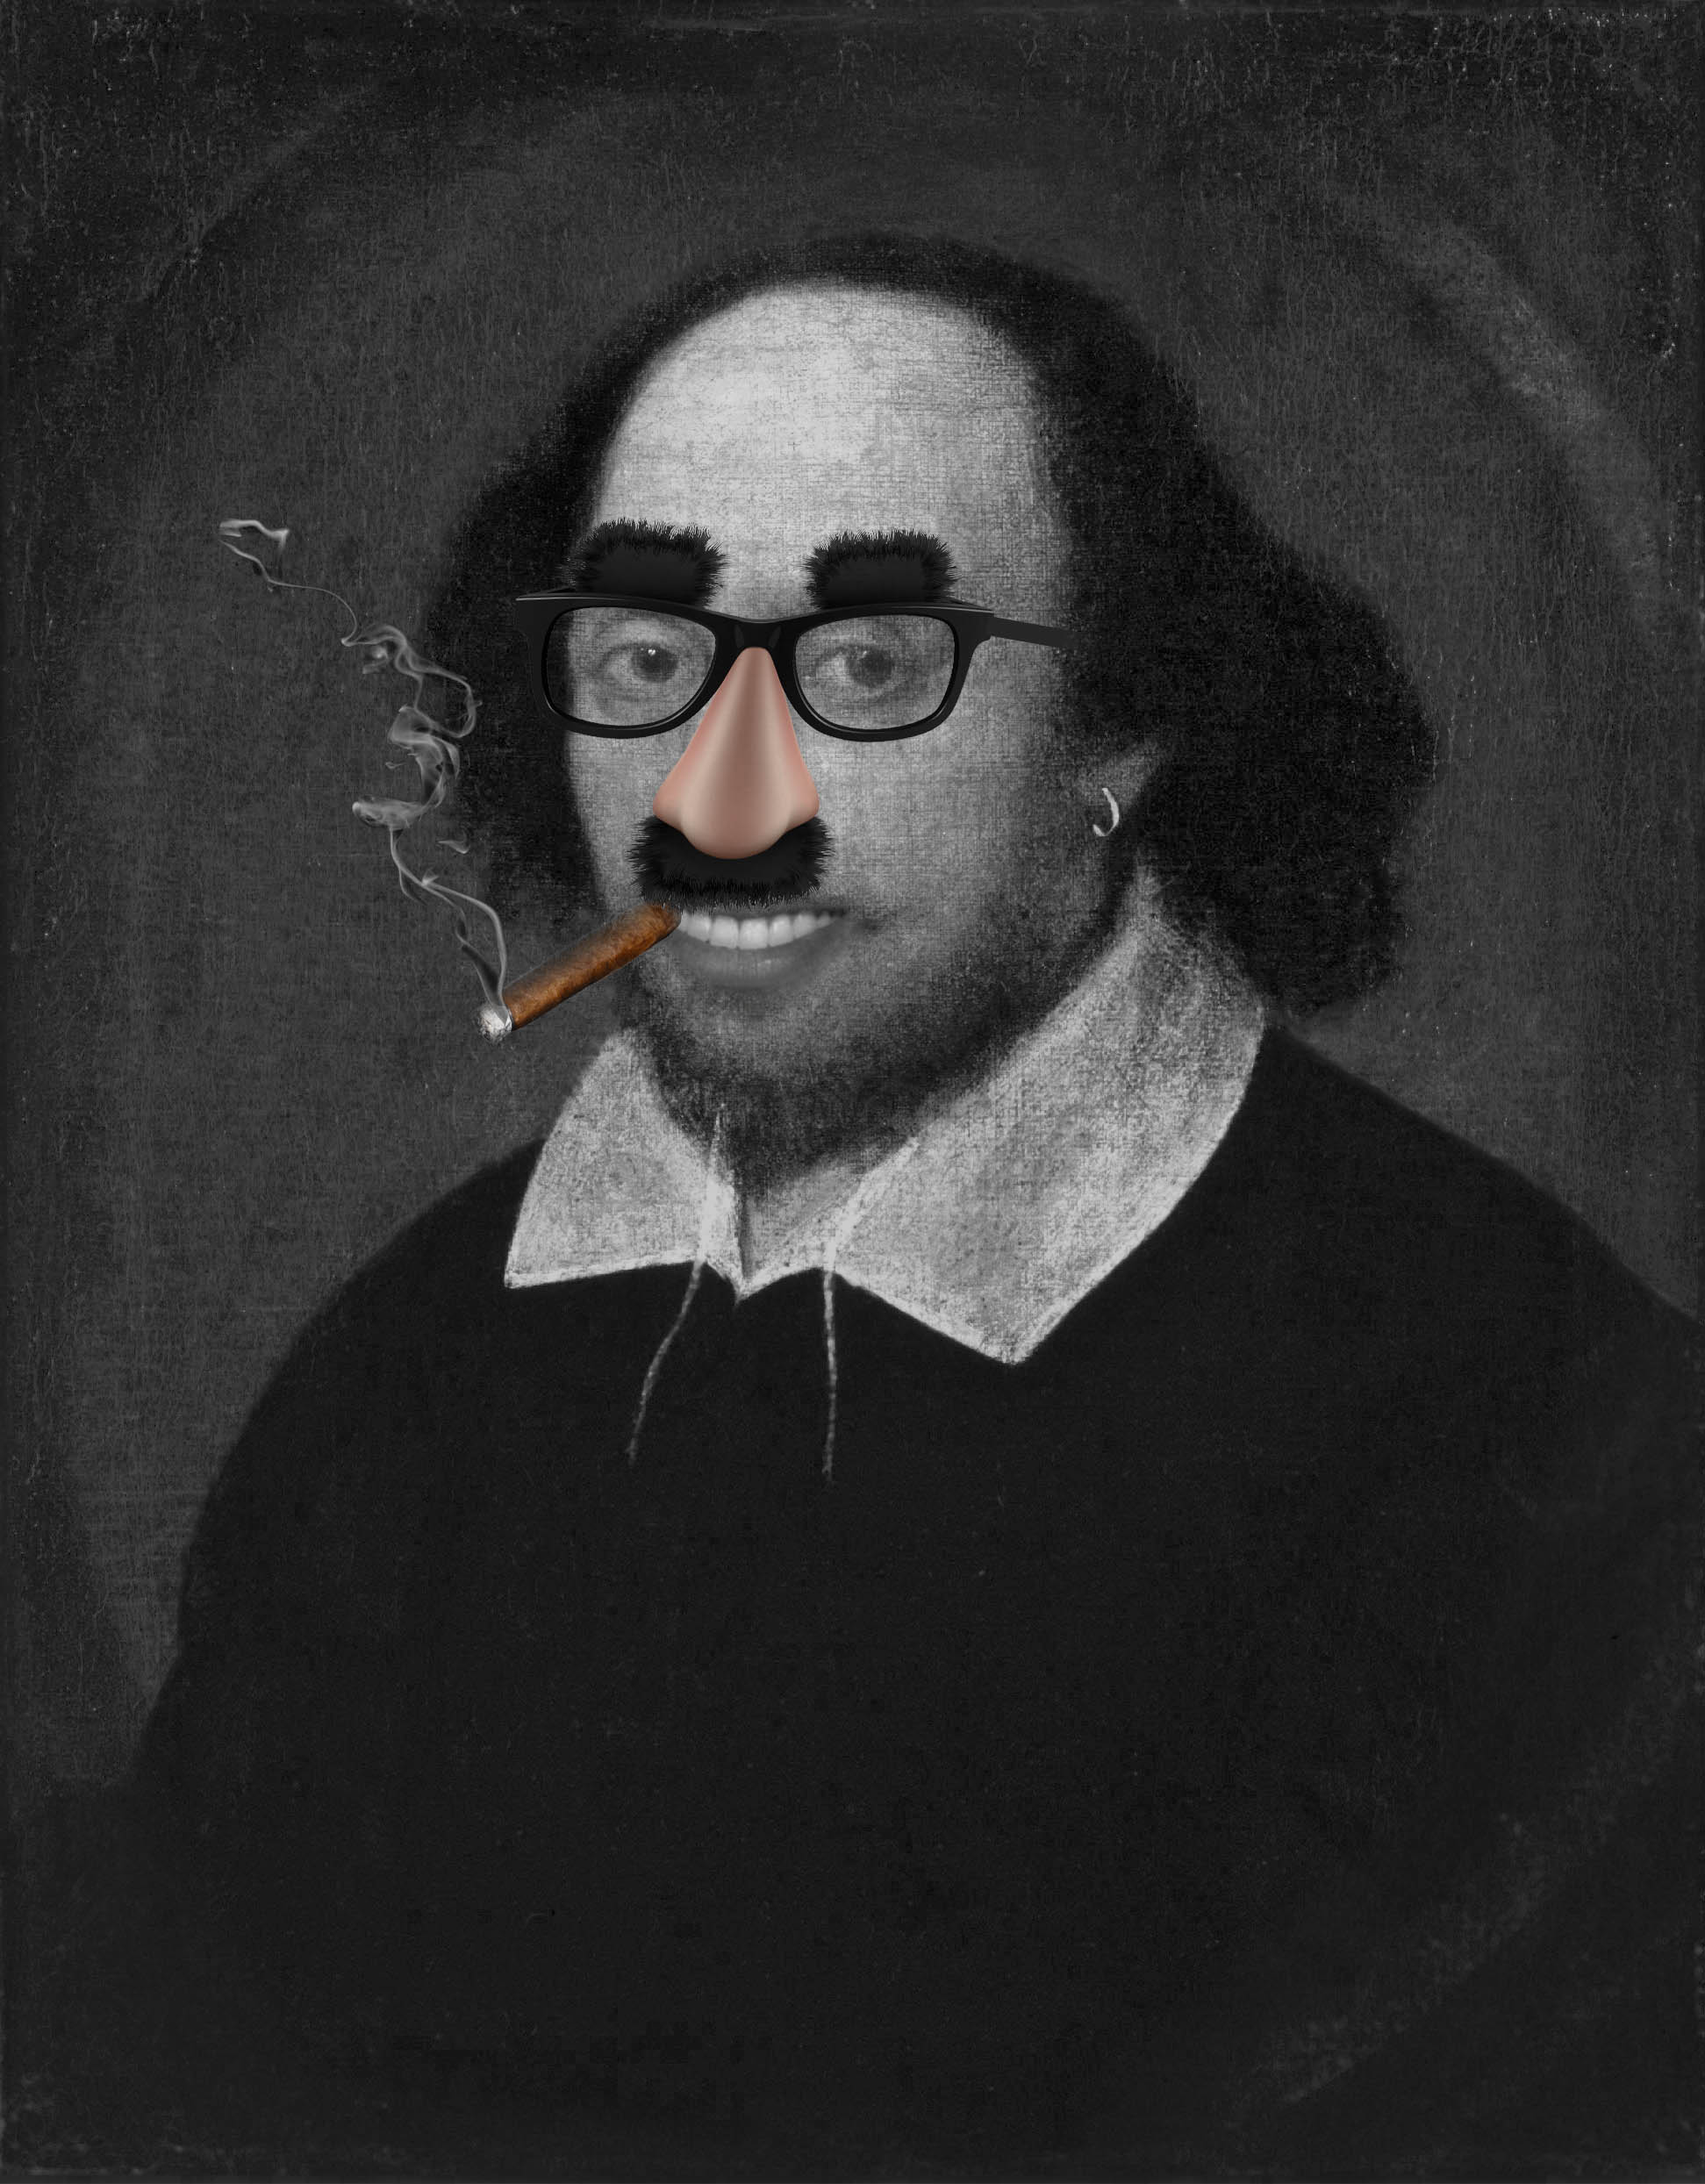 Shakespeare with Groucho glasses cigar and smoke.jpg